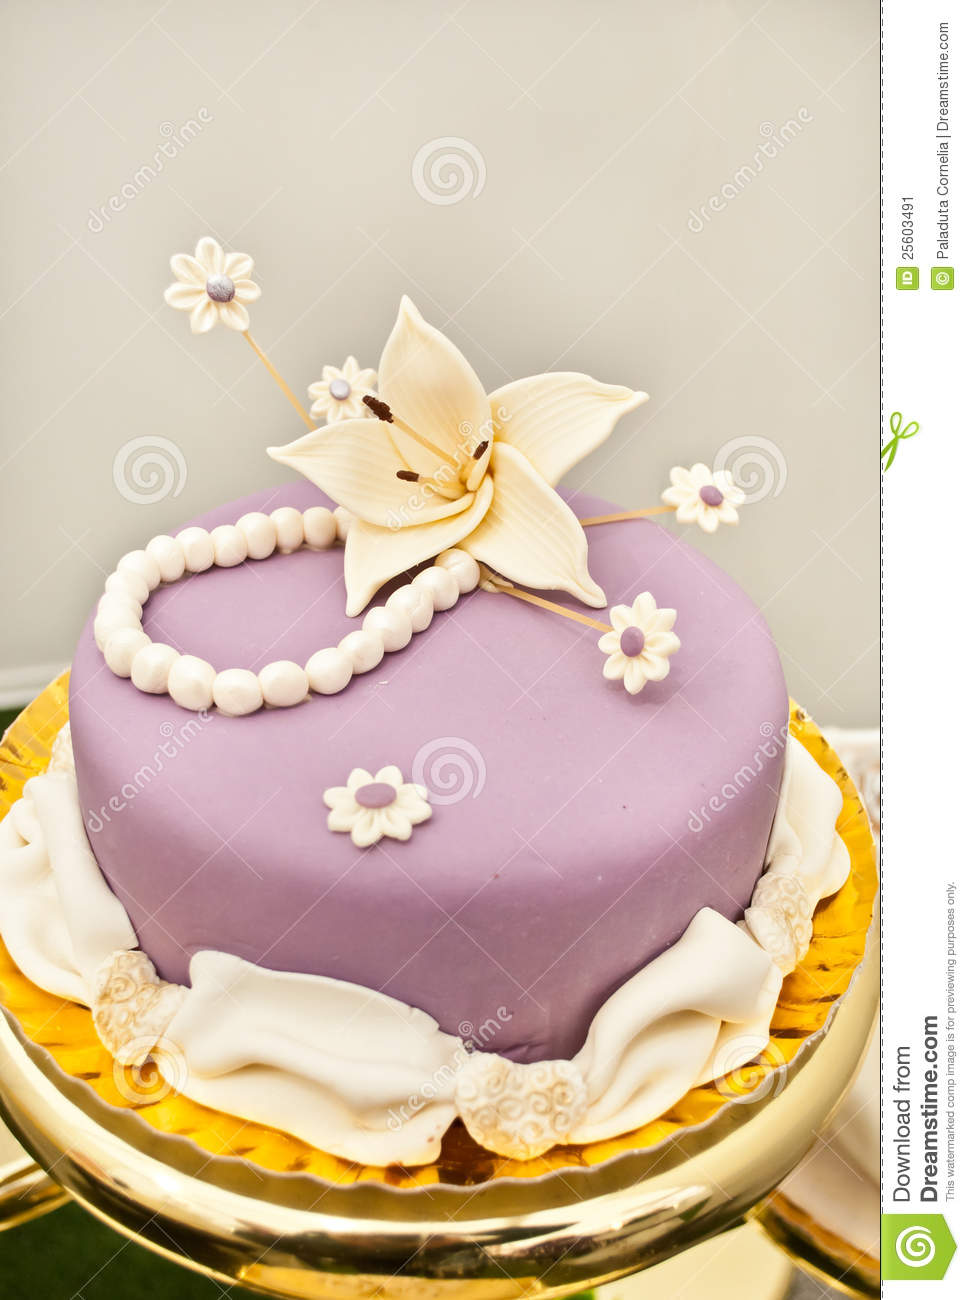 Purple Cake With Lily Flower Stock Image Image Of Bake Cake 25603491